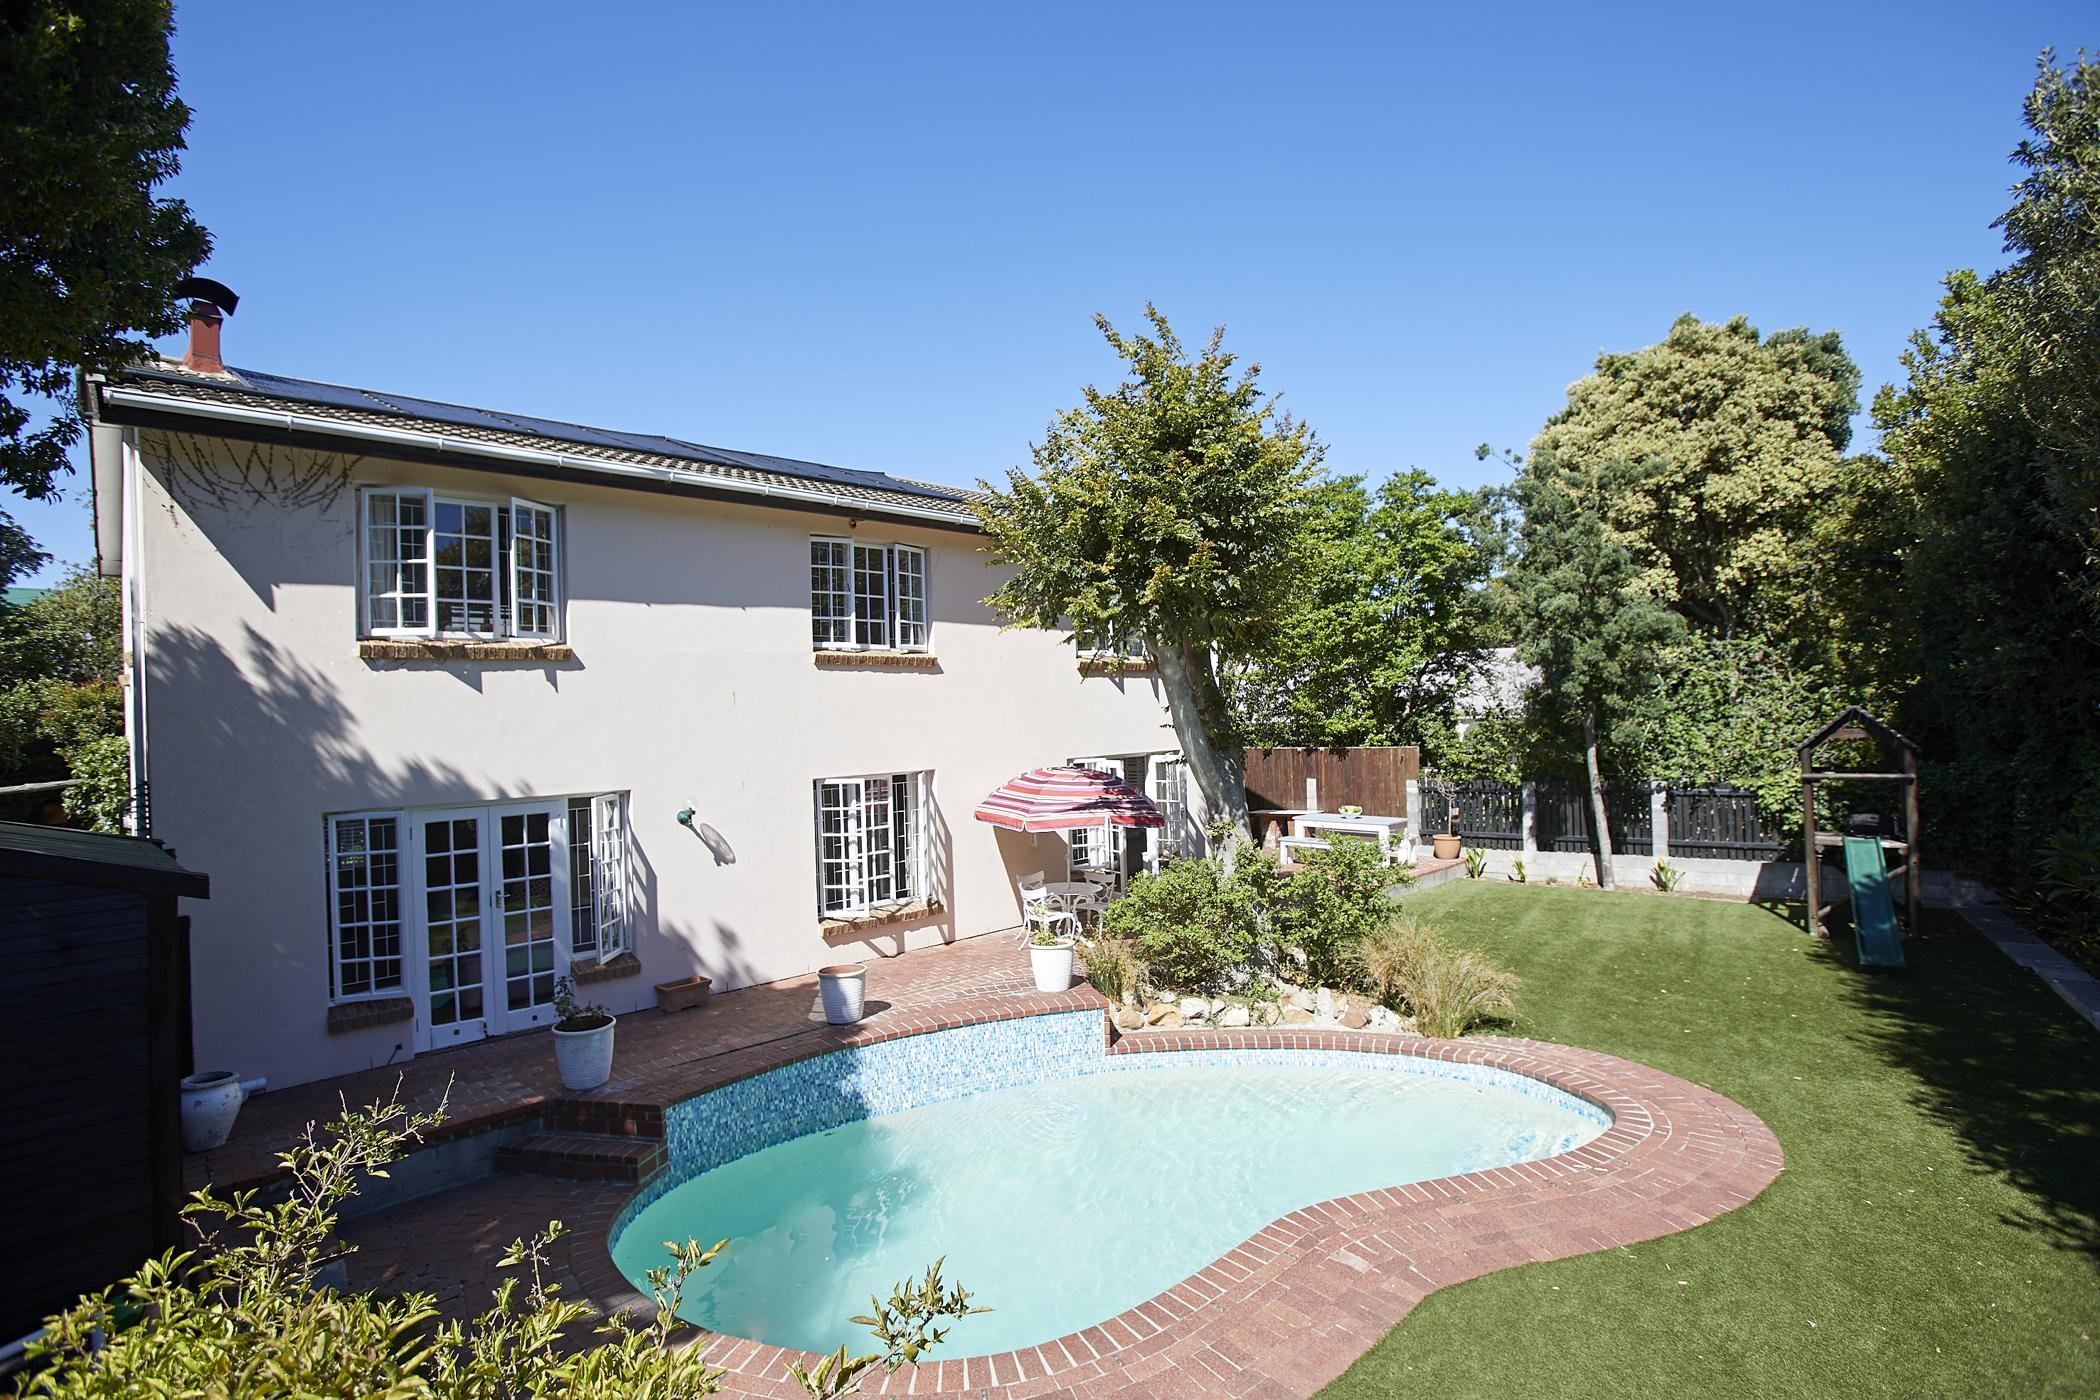 Rondebosch Property   Houses for Sale   Pam Golding Properties